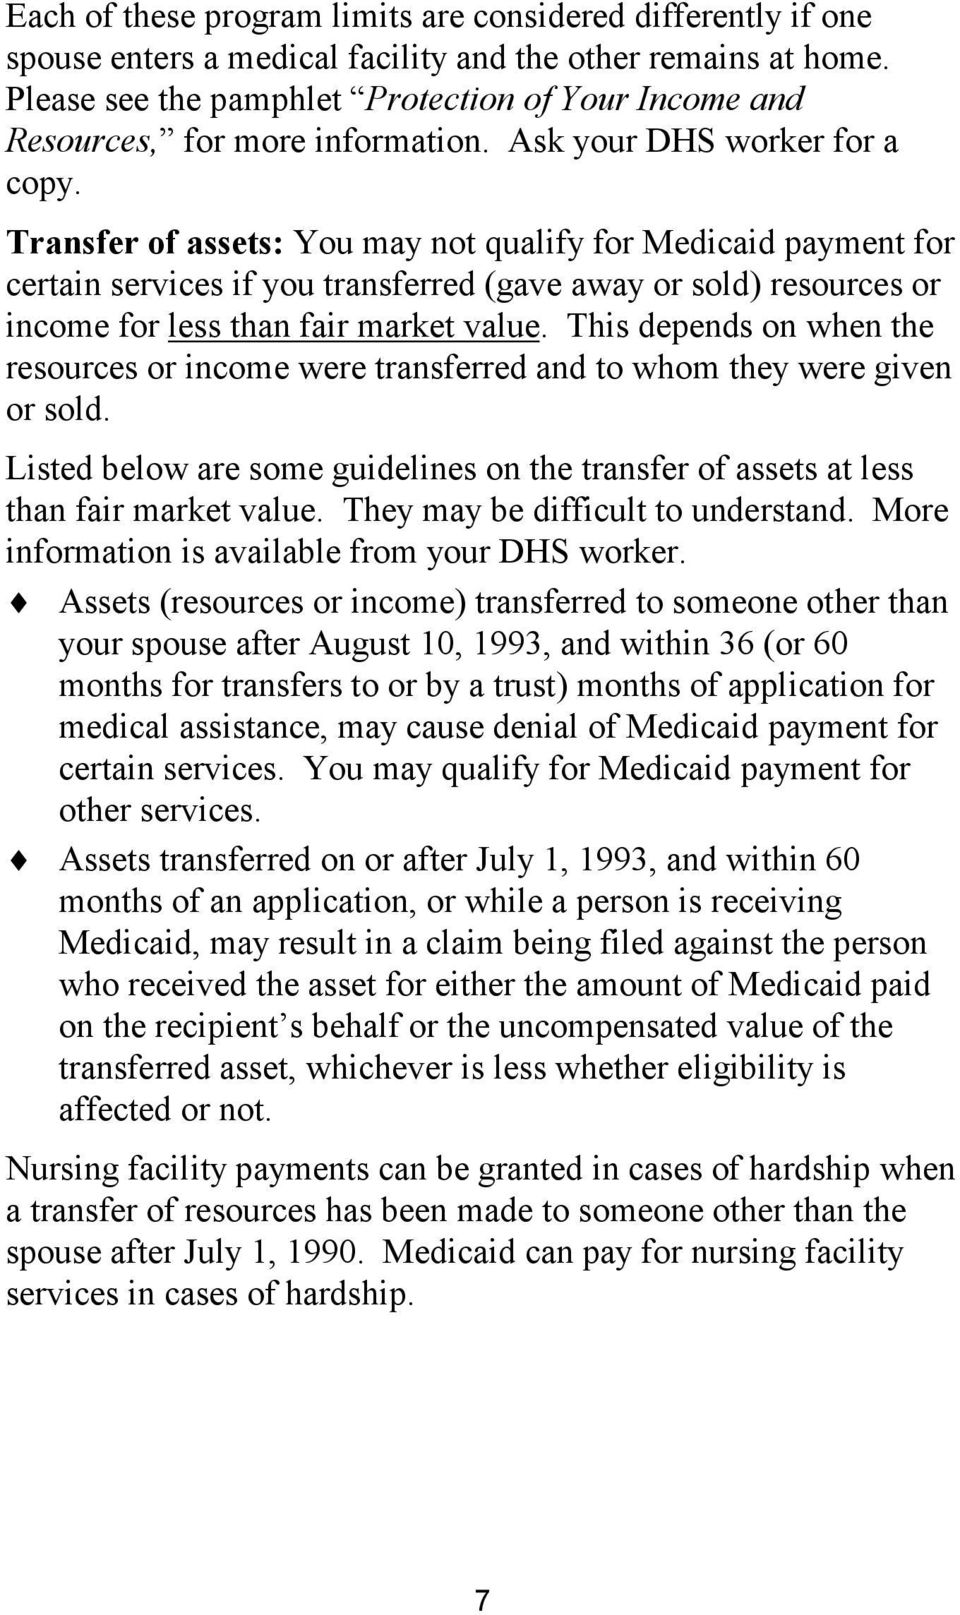 Transfer of assets: You may not qualify for Medicaid payment for certain services if you transferred (gave away or sold) resources or income for less than fair market value.